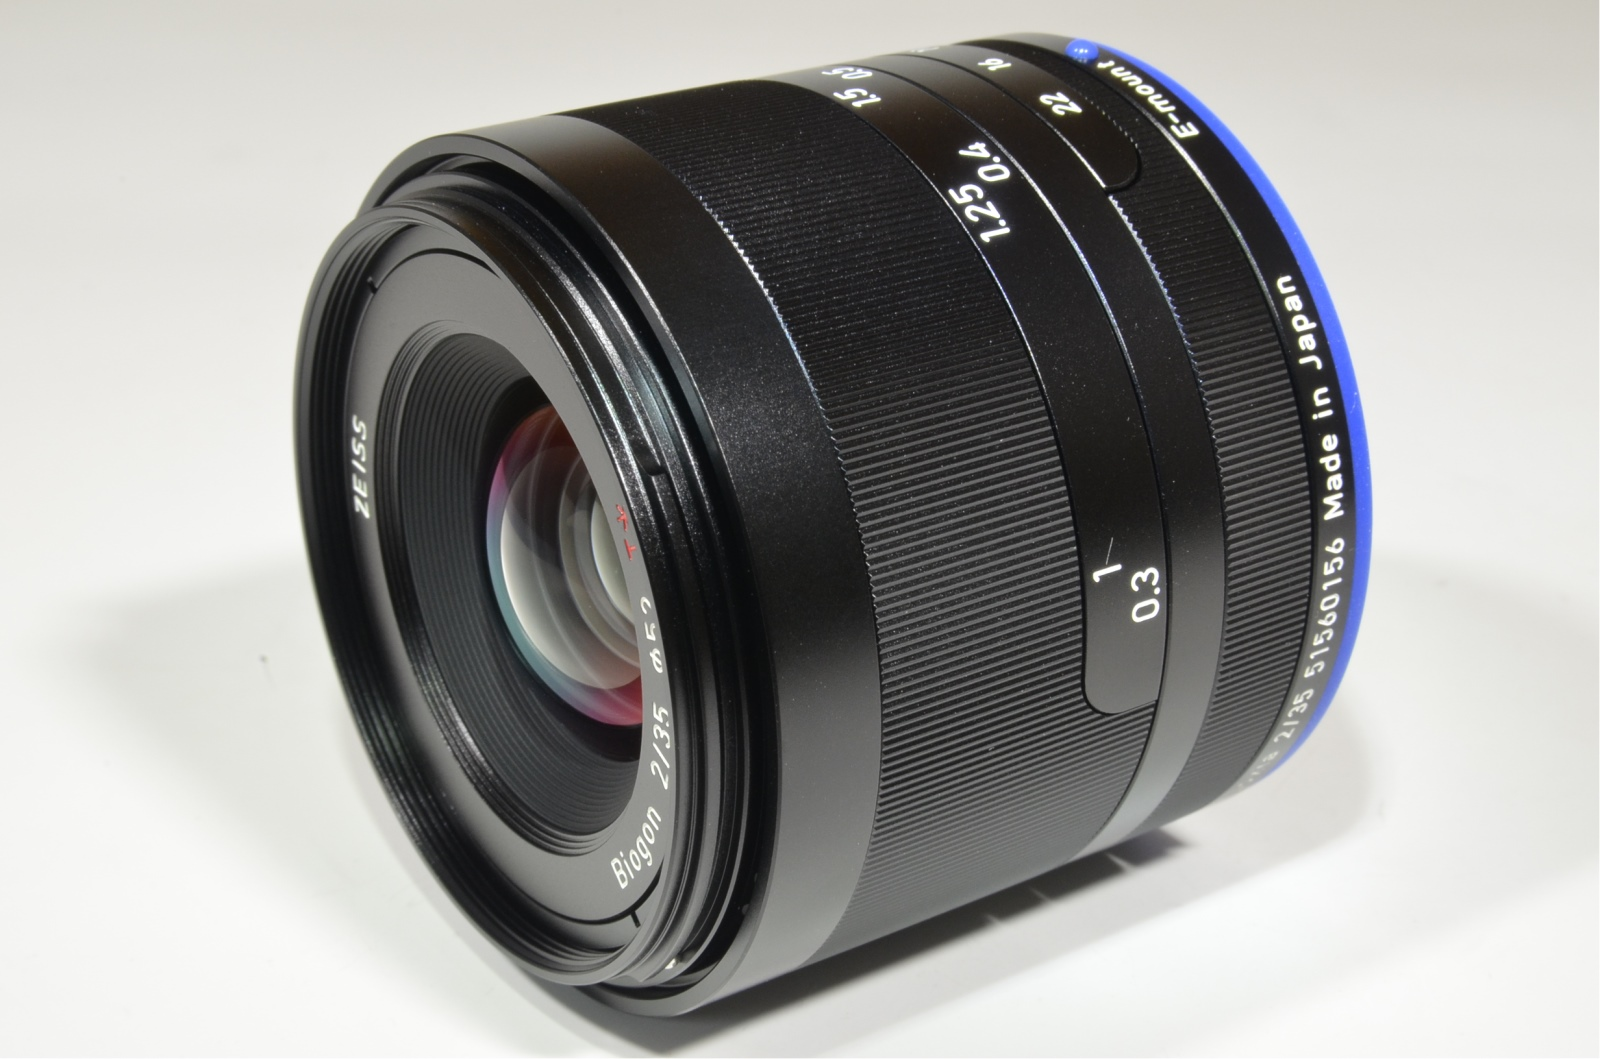 carl zeiss loxia 35mm f/2 biogon t* lens for sony e mount